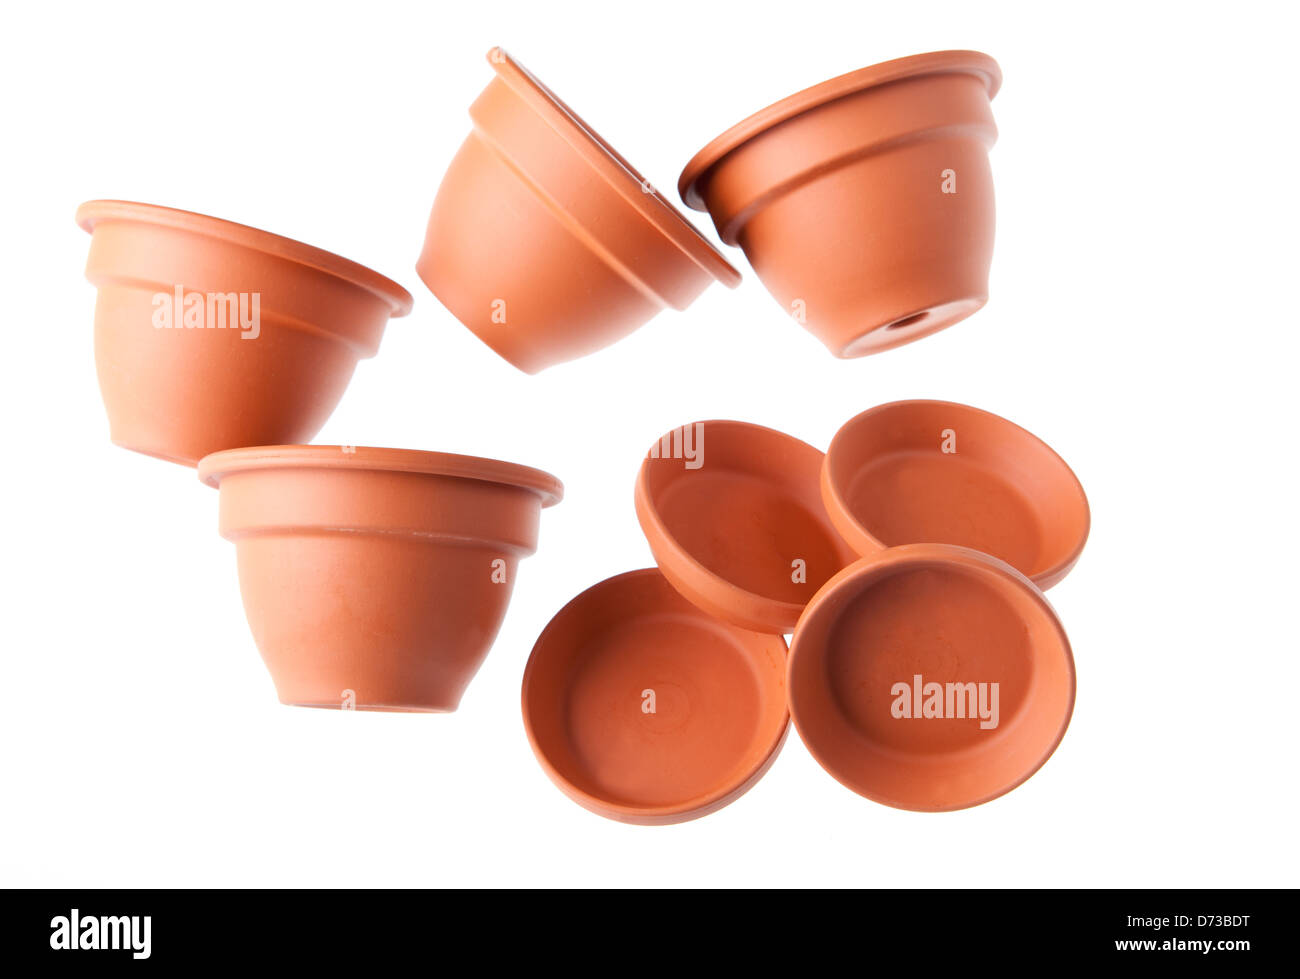 Four scattered clay flowerpots with saucers - Stock Image